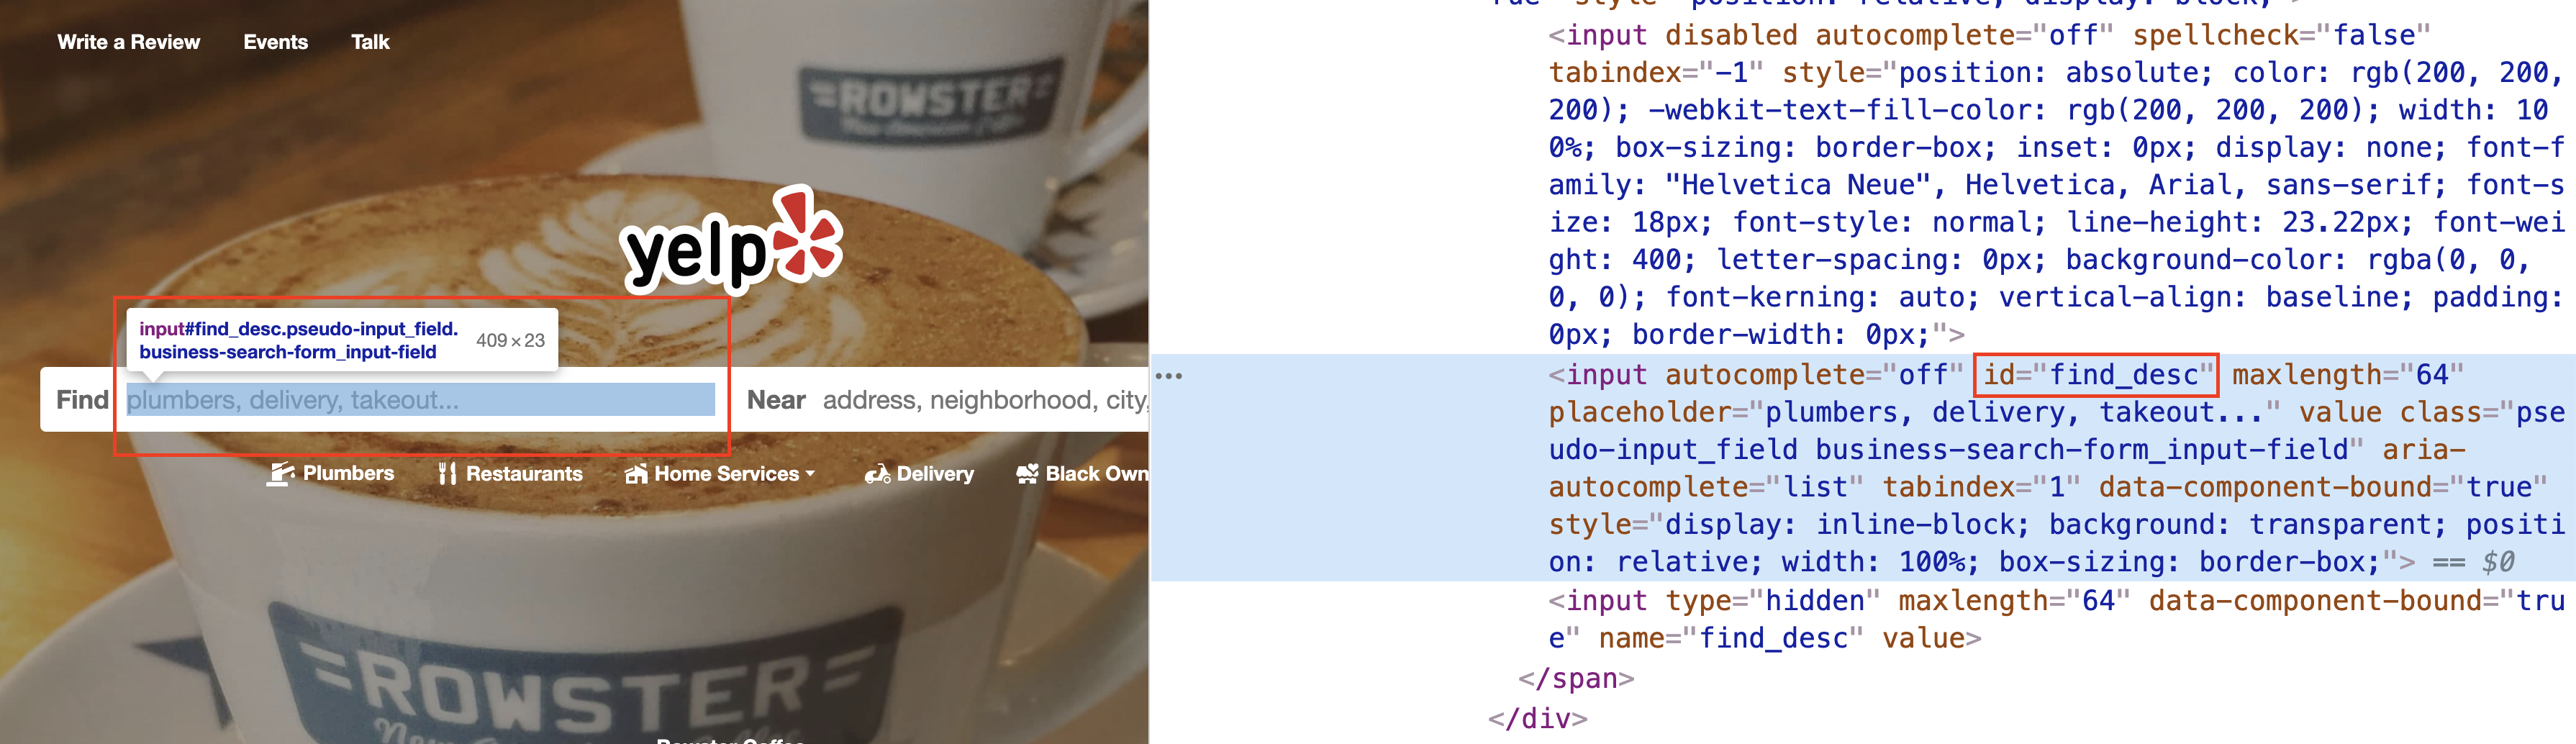 yelp.com page with devtools open